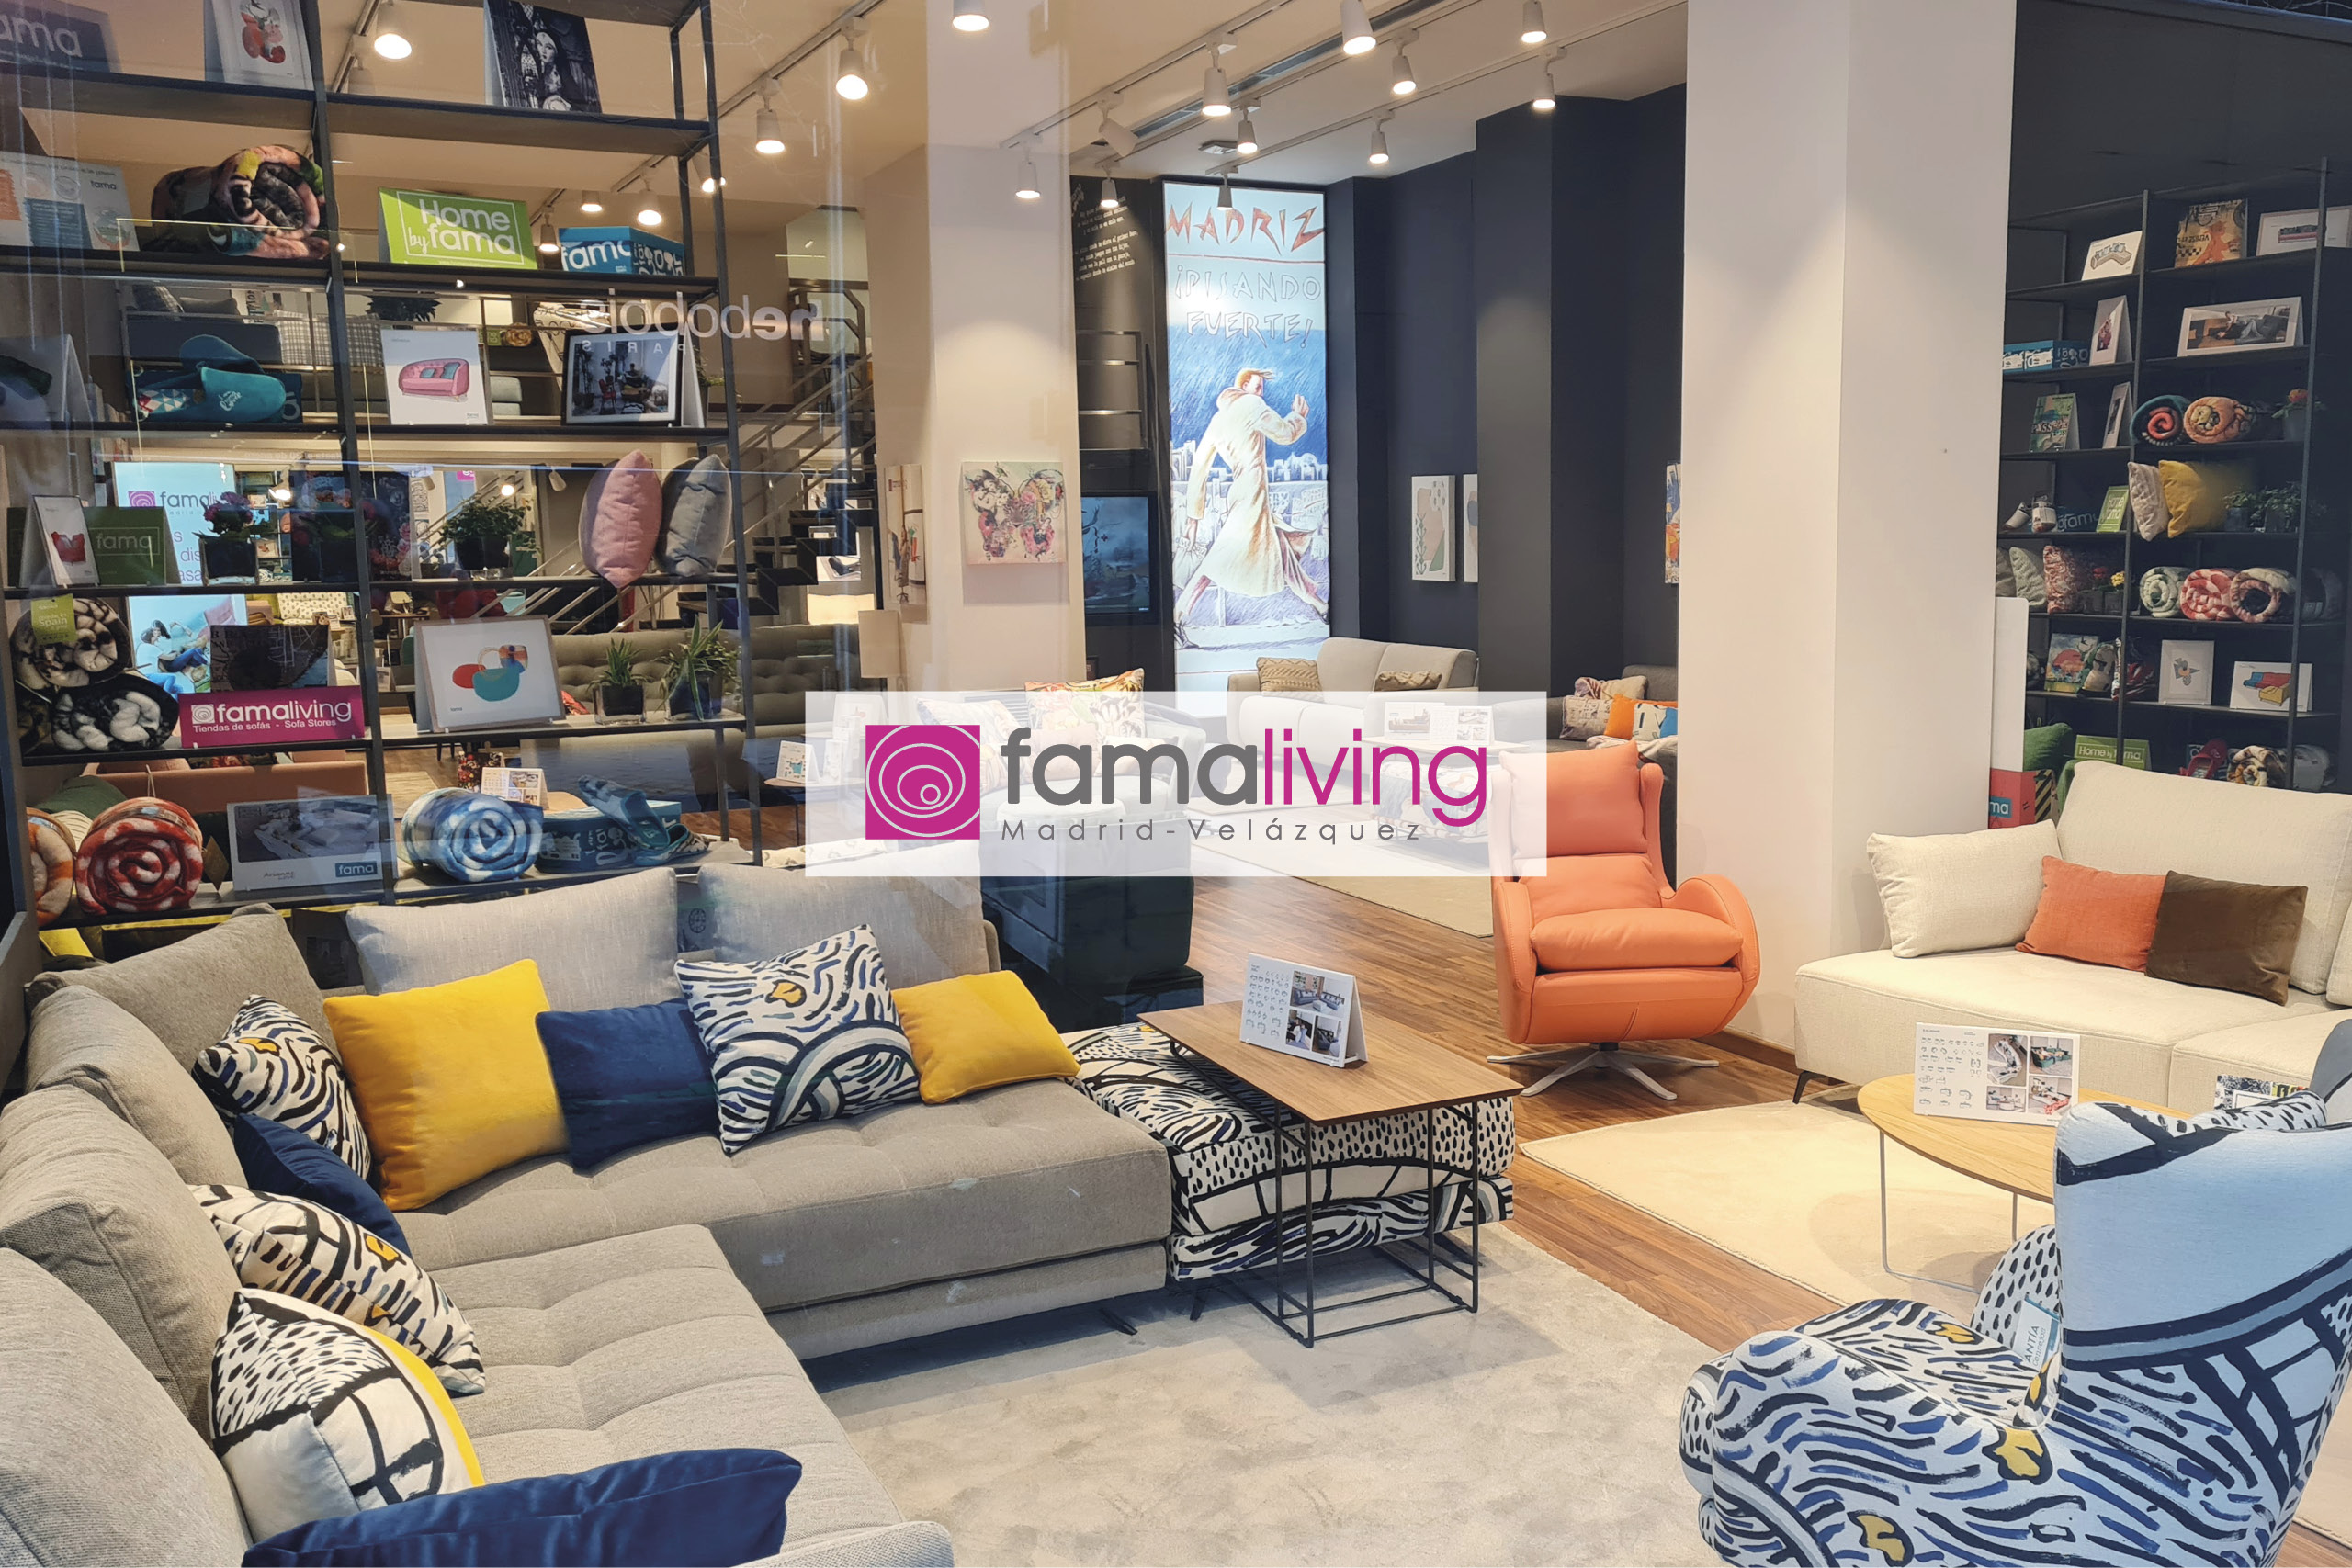 https://www.famaliving.com/madridvelazquez-en